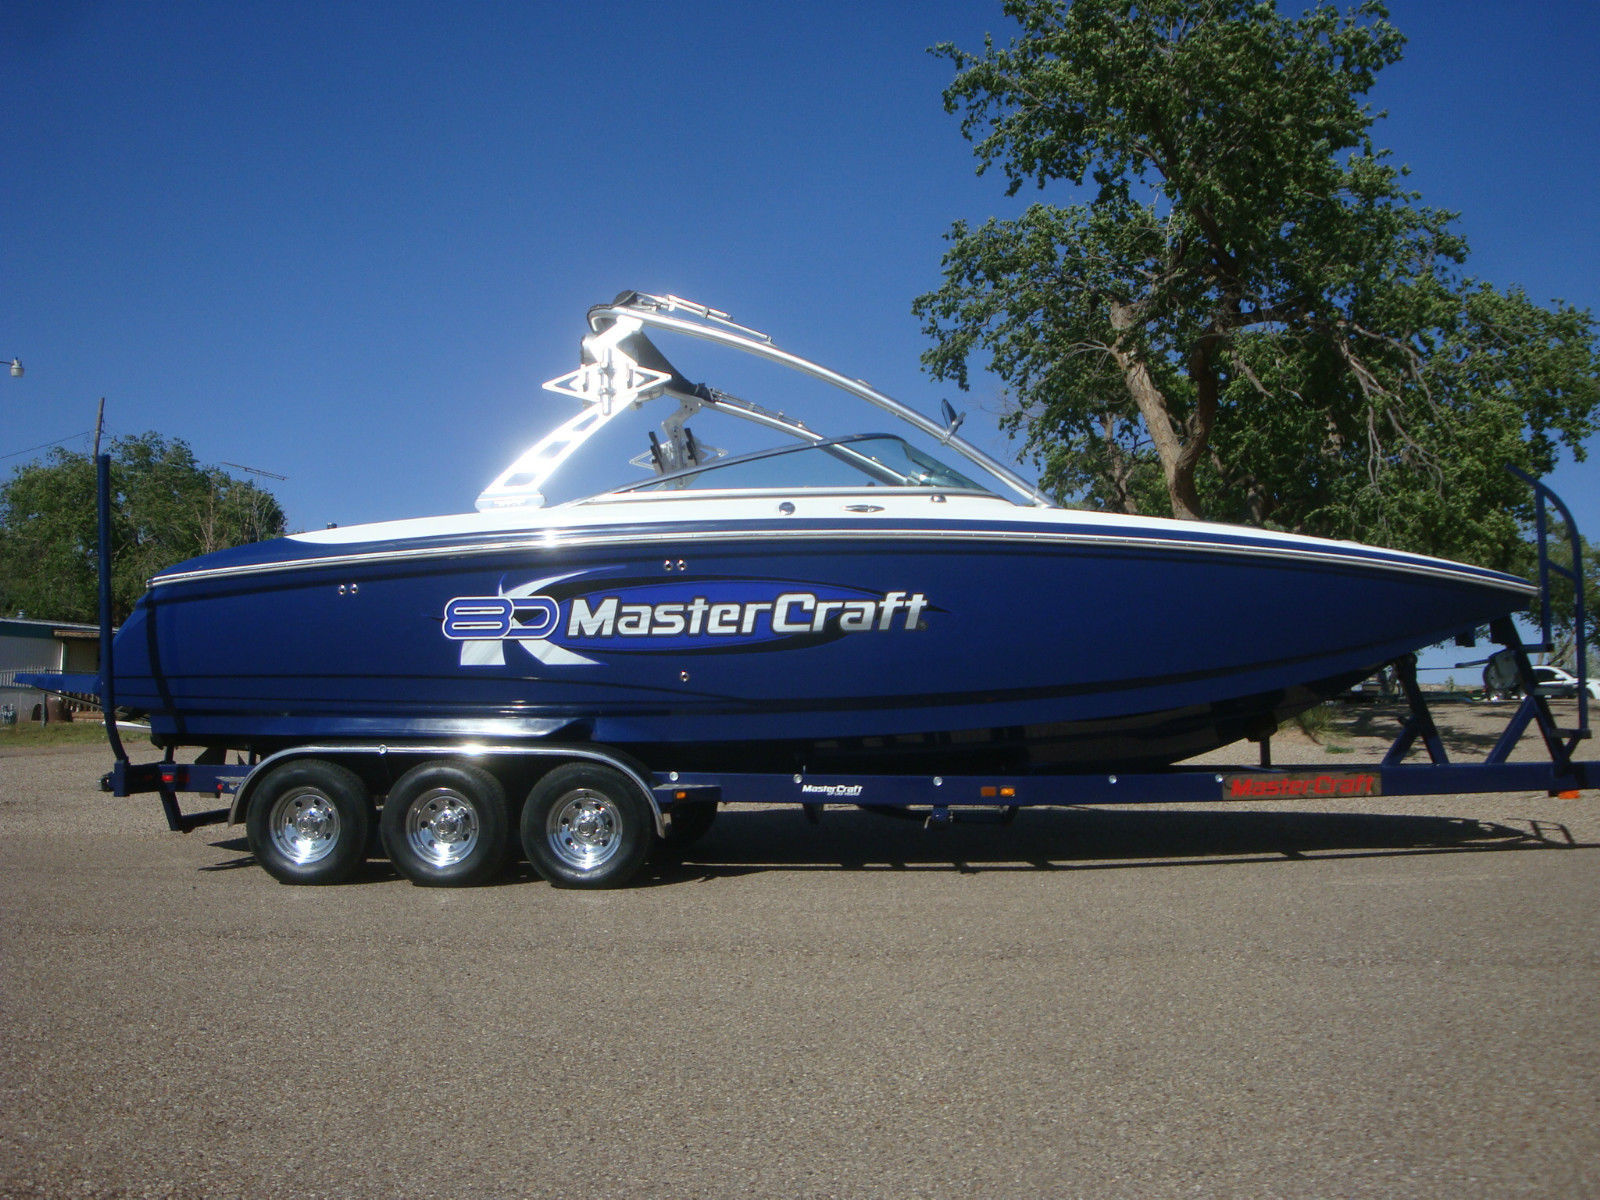 Mastercraft x80 2005 for sale for 65 950 boats from for Carrelage 80 x 80